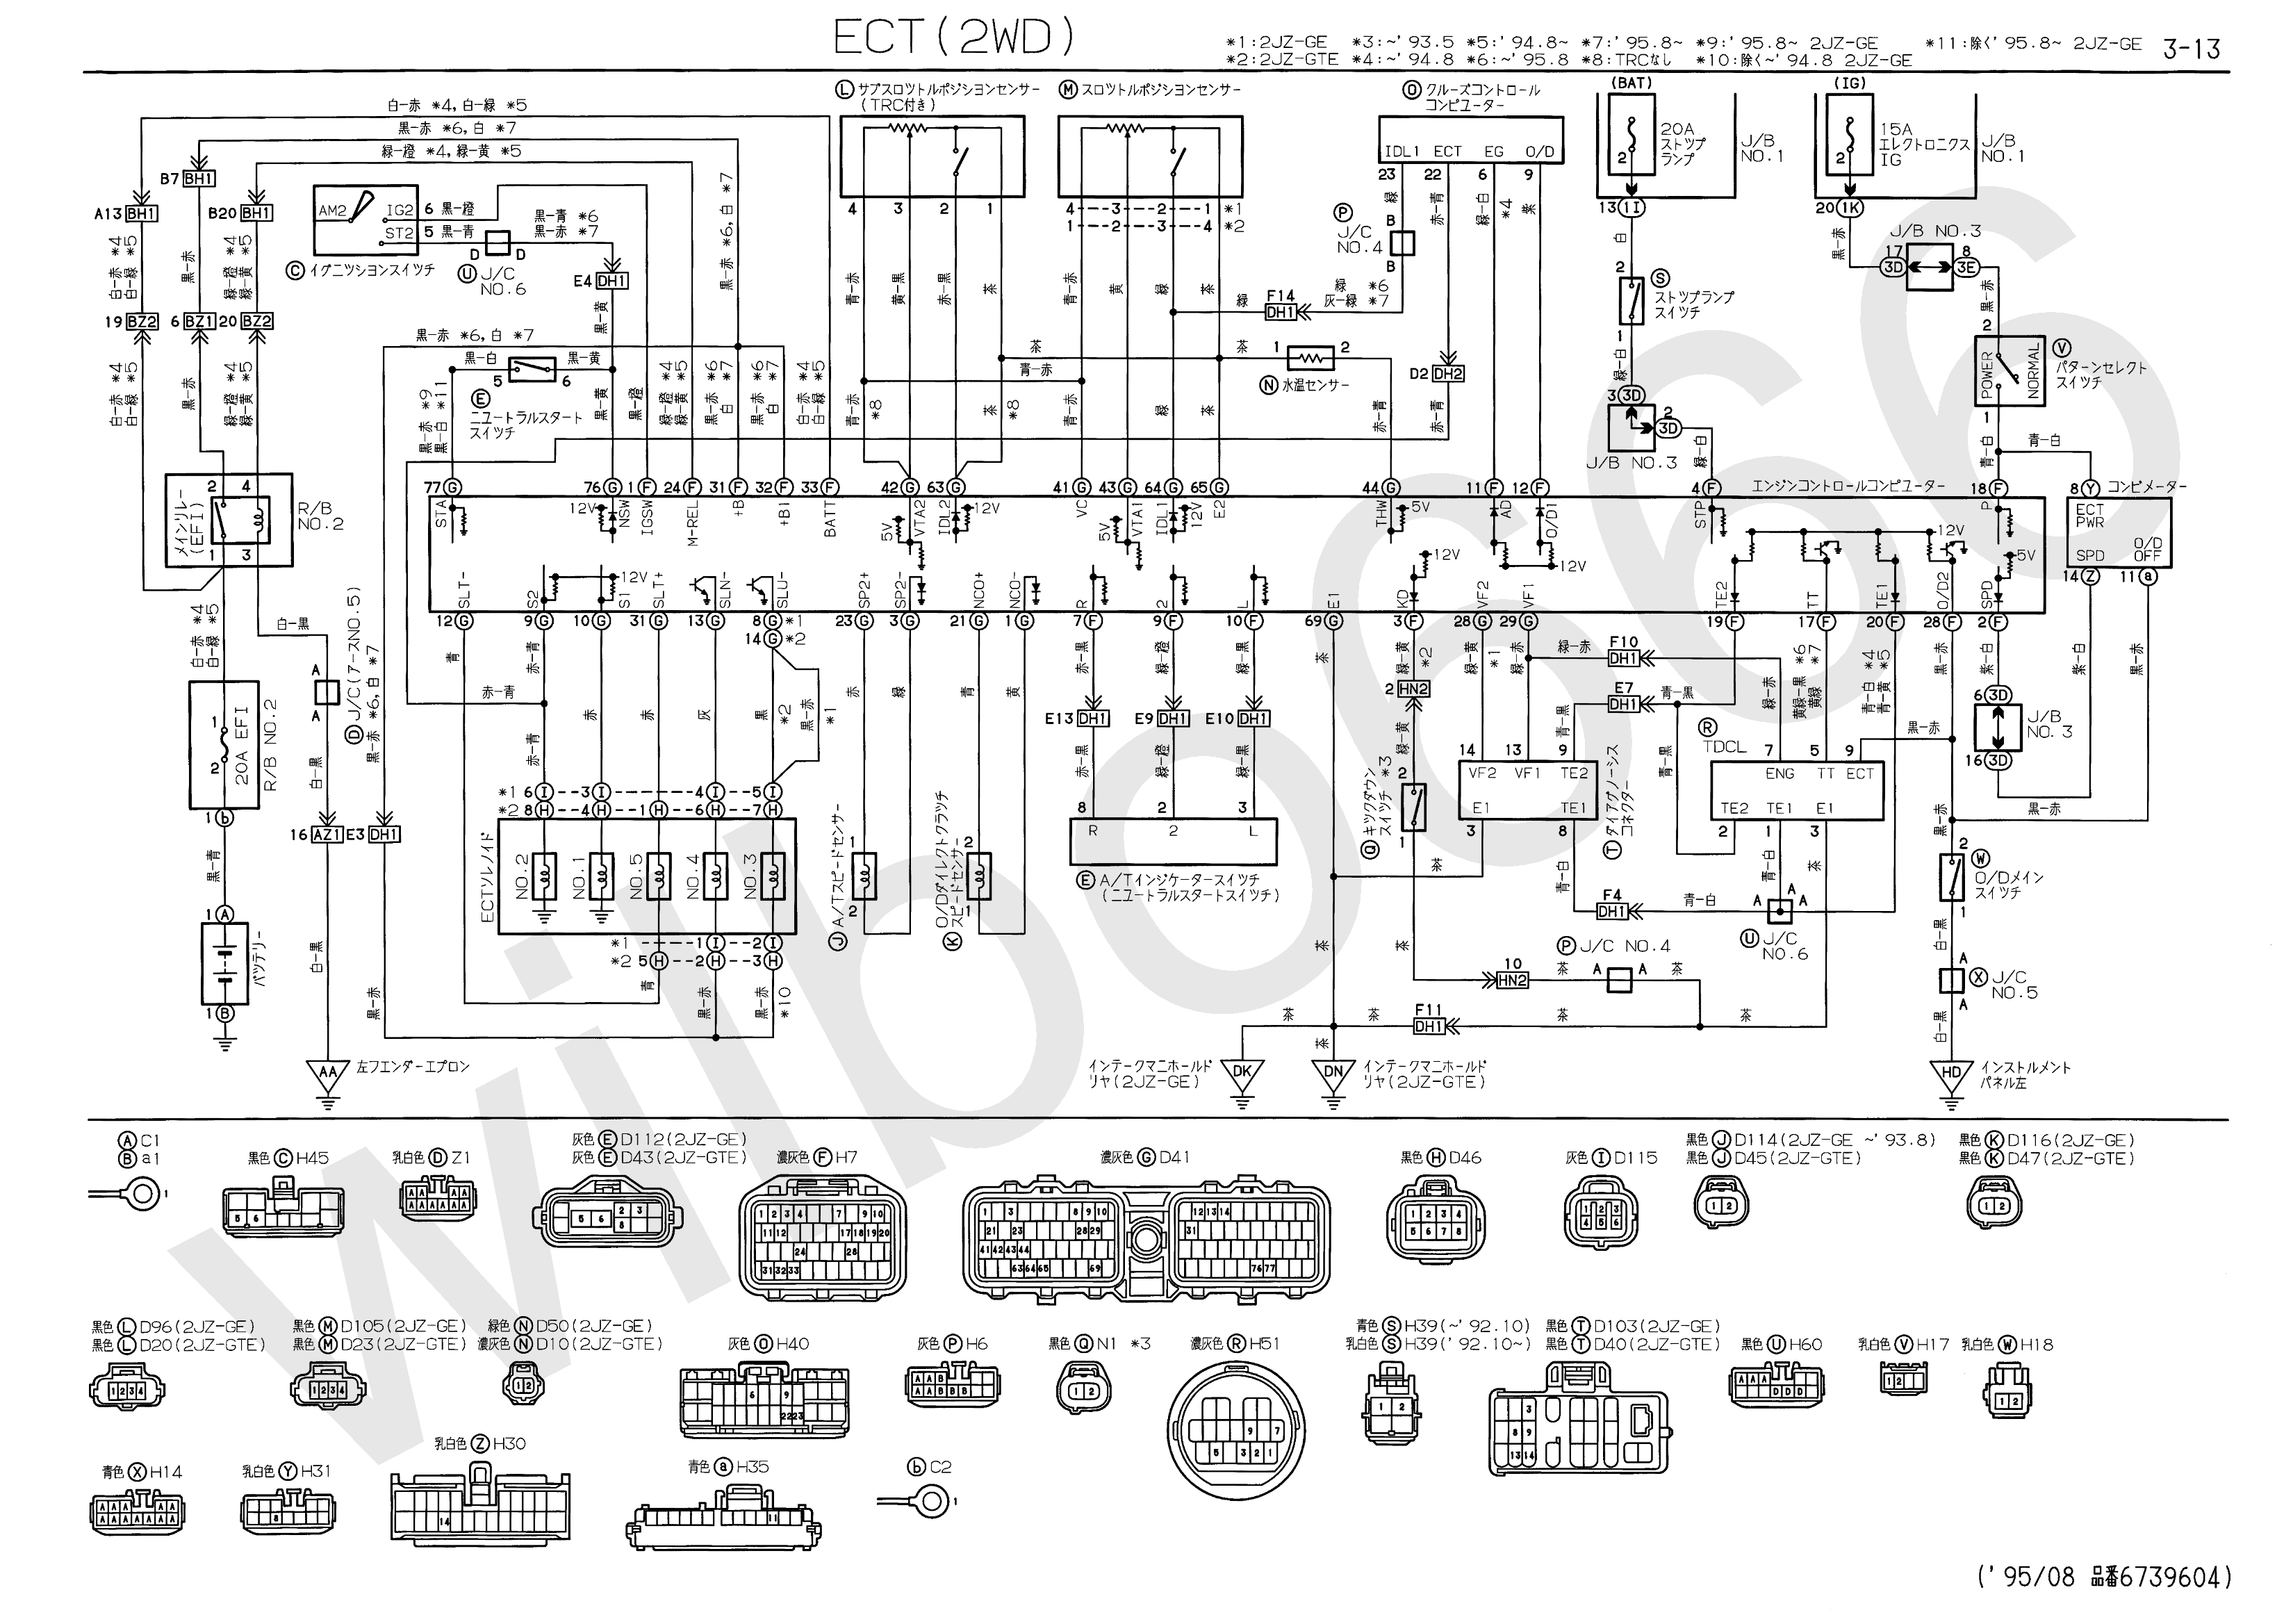 Toyota Electrical Wiring Diagram: wilbo666 / 2JZ-GE JZS147 Engine Wiring,Design